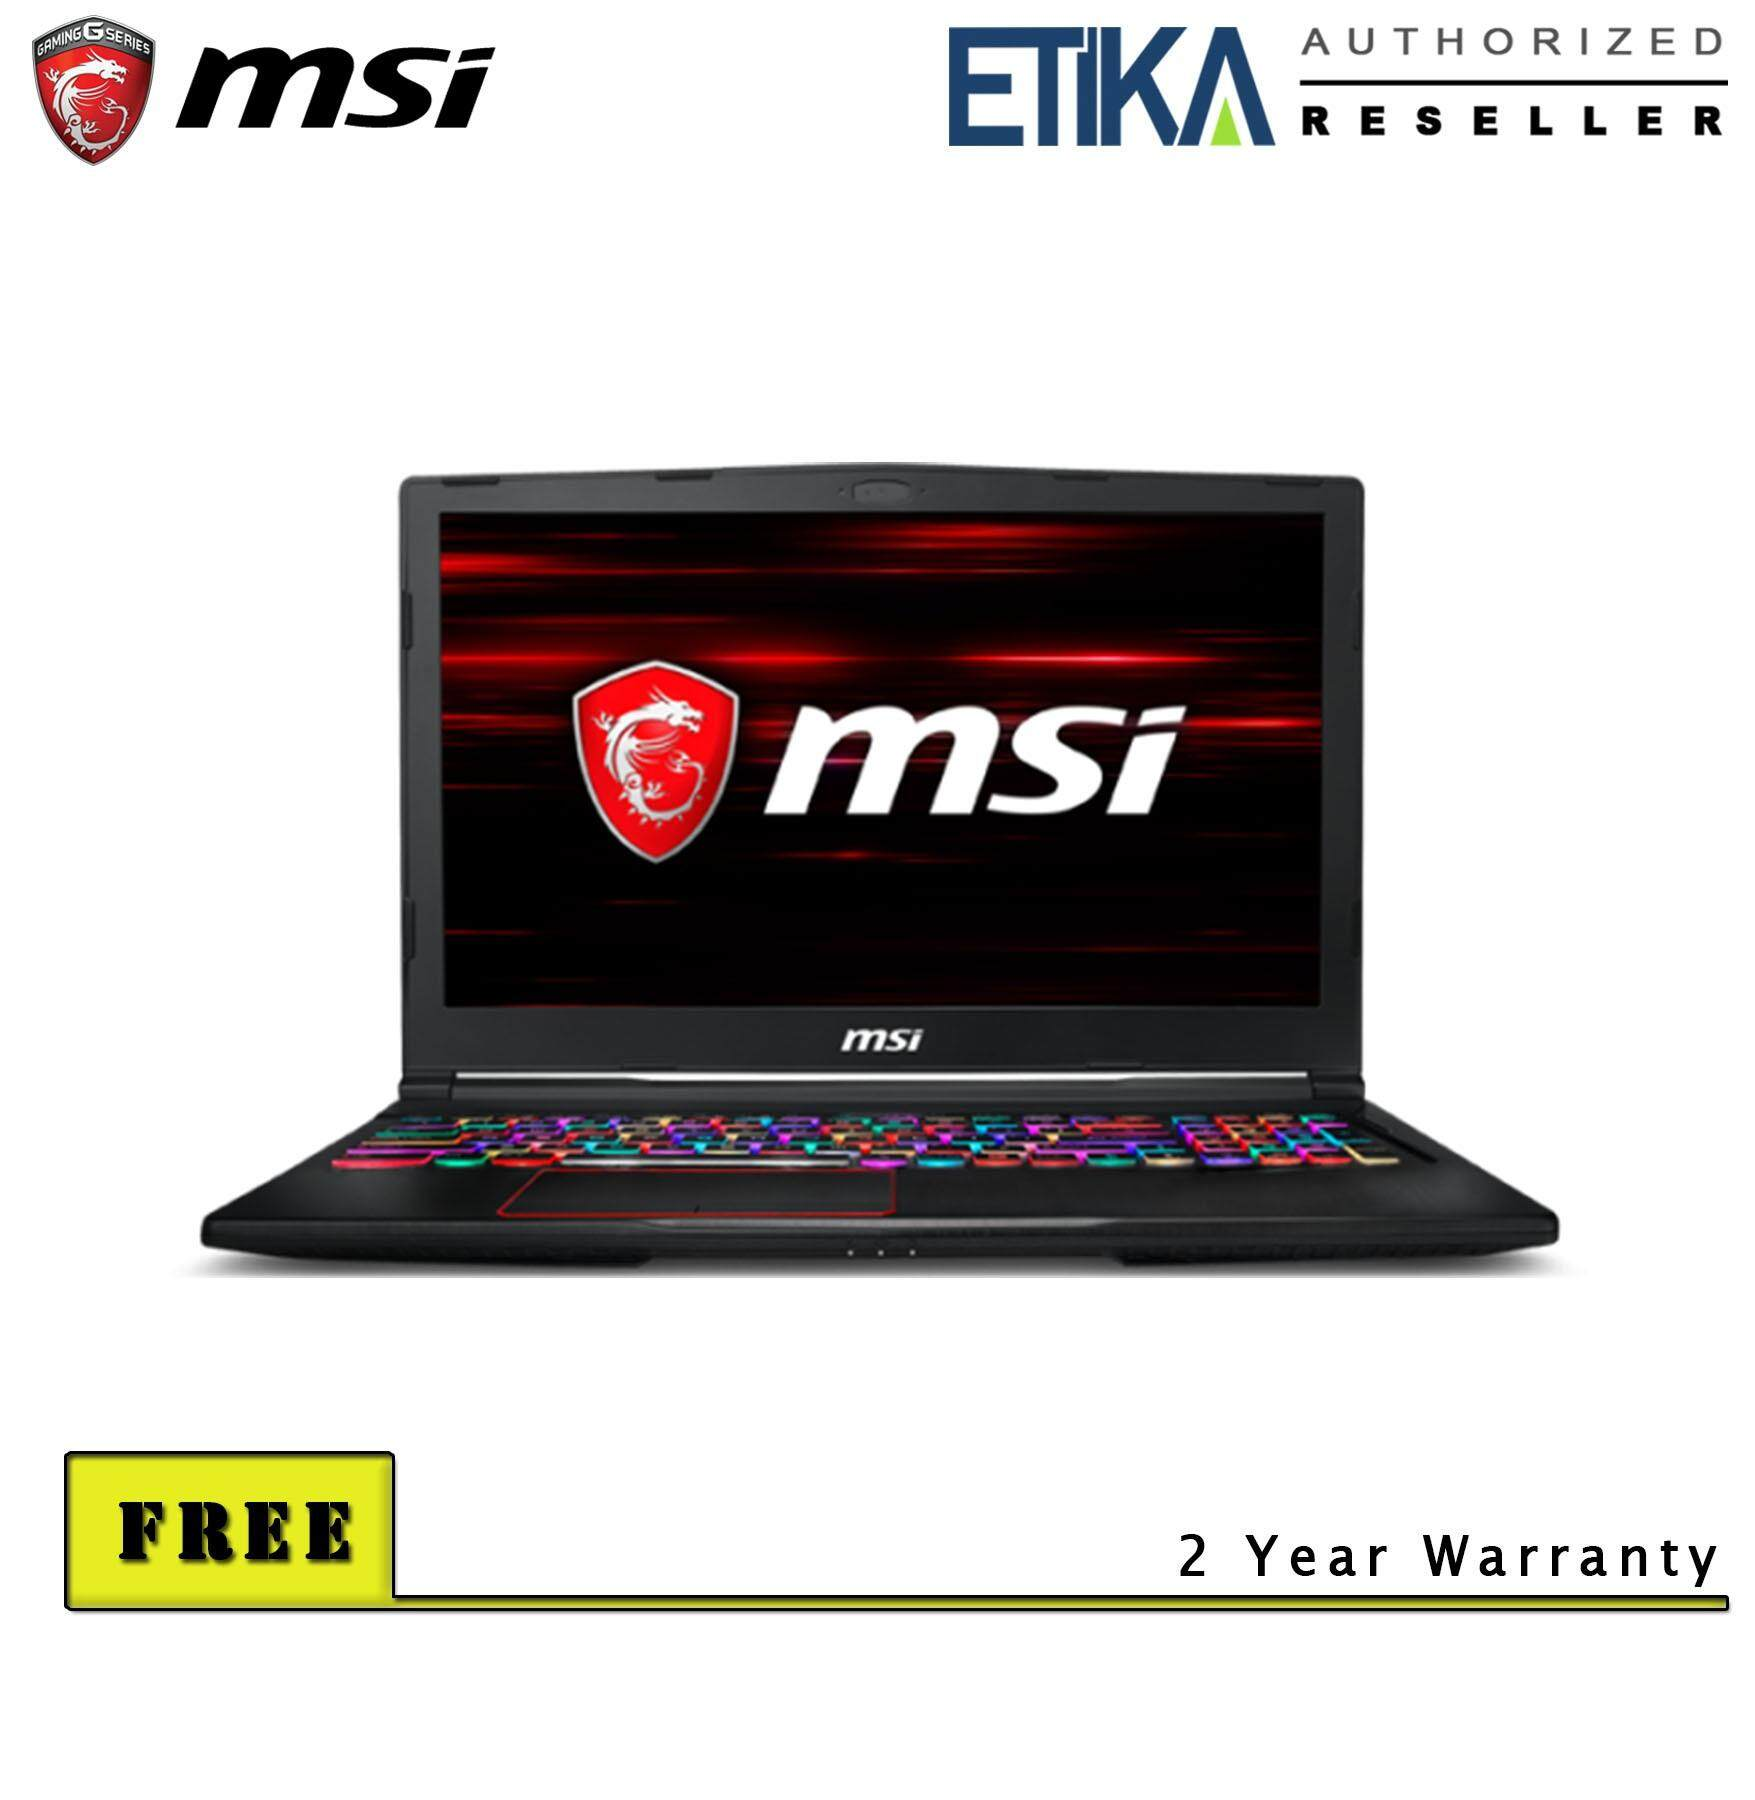 MSI GE63 Raider 8RF RGB-467 ((GeForce GTX 1070 , 8GB GDDR5) Gaming Laptop - Free Backpack Malaysia